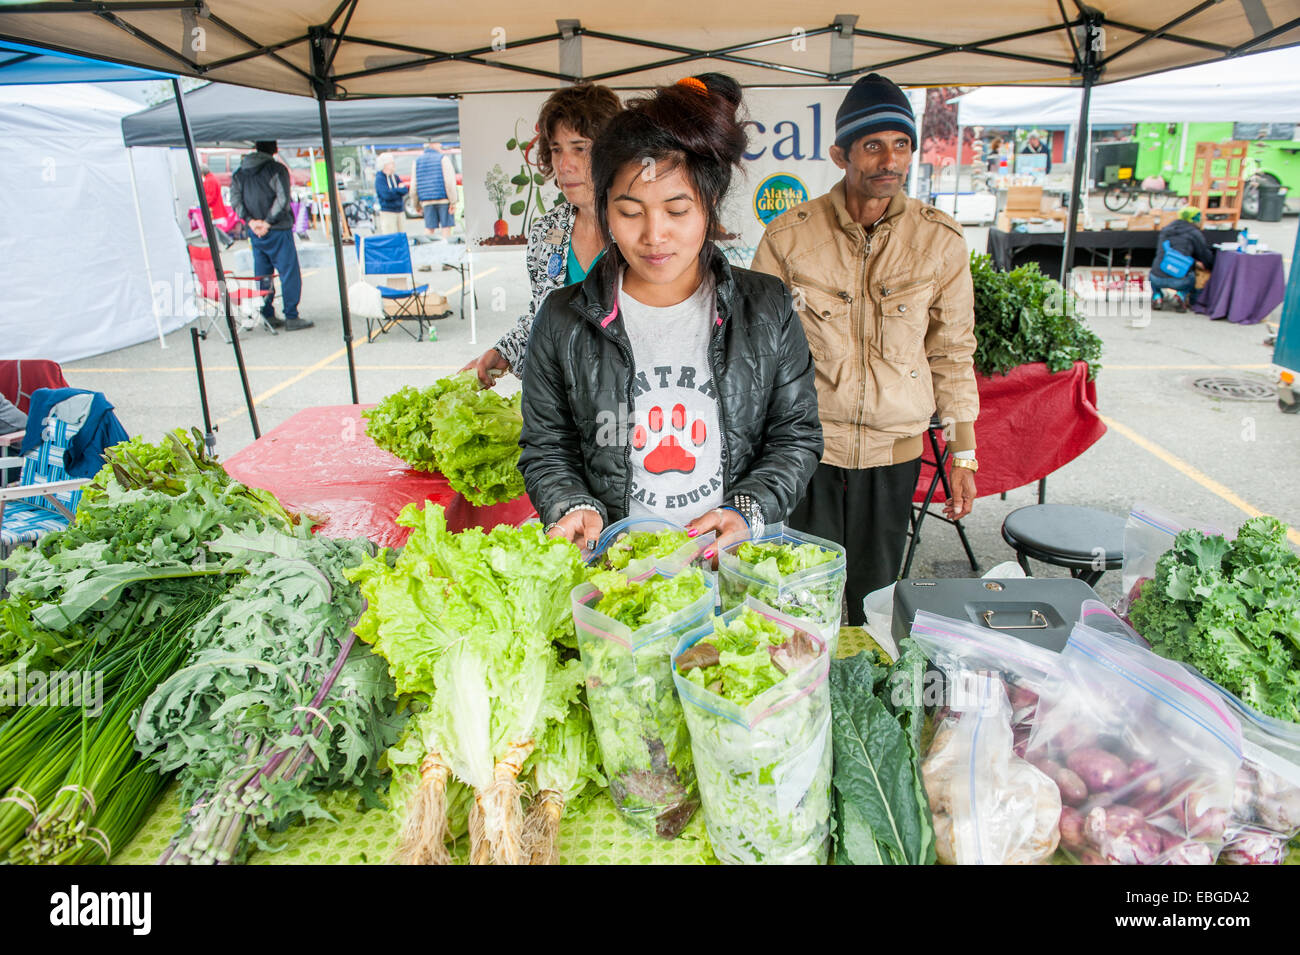 Woman selling vegetables at a farmers market - Stock Image